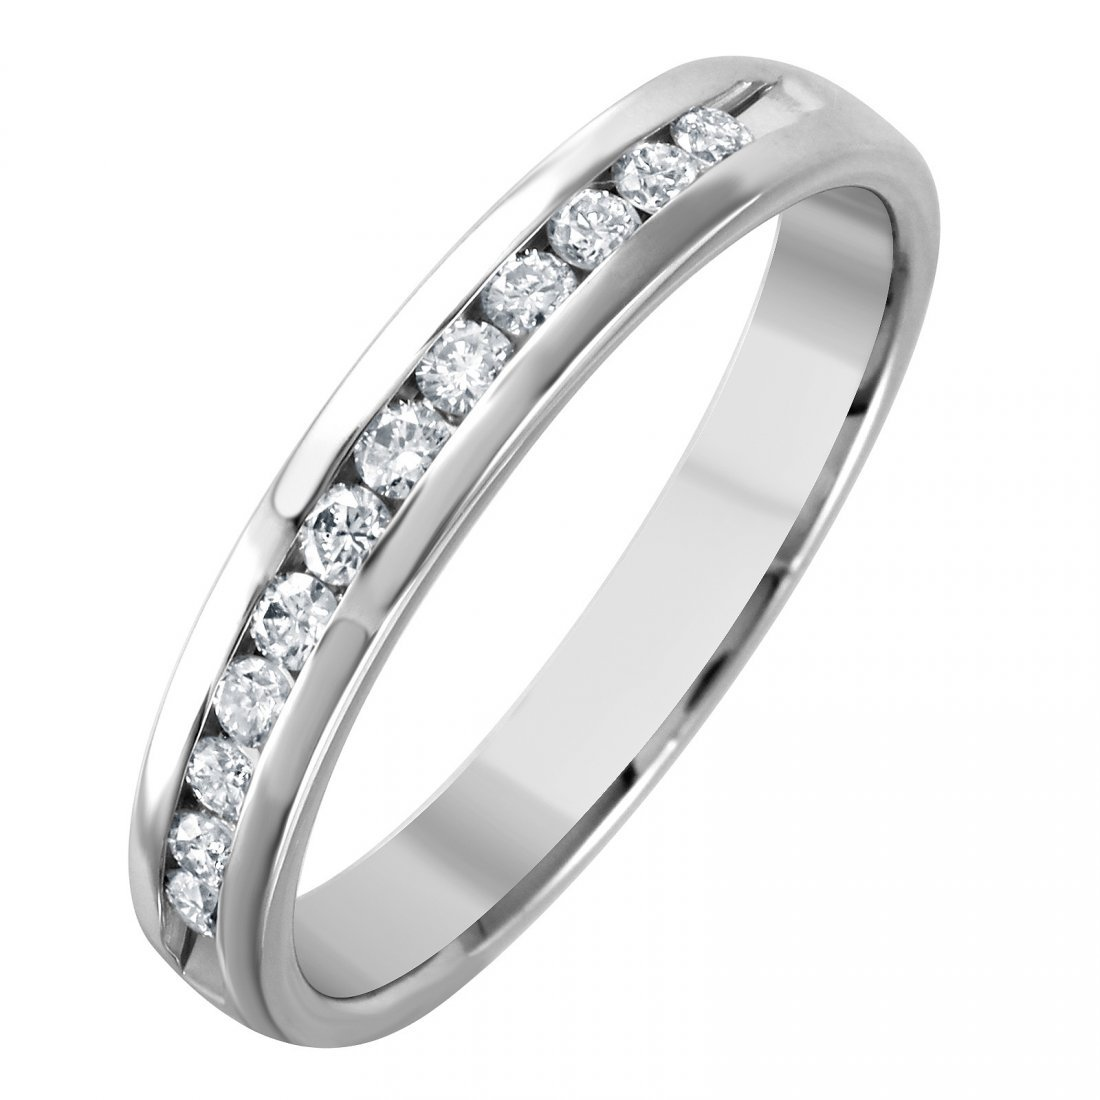 14K White Gold Diamond Wedding Band, 0.2 ctw